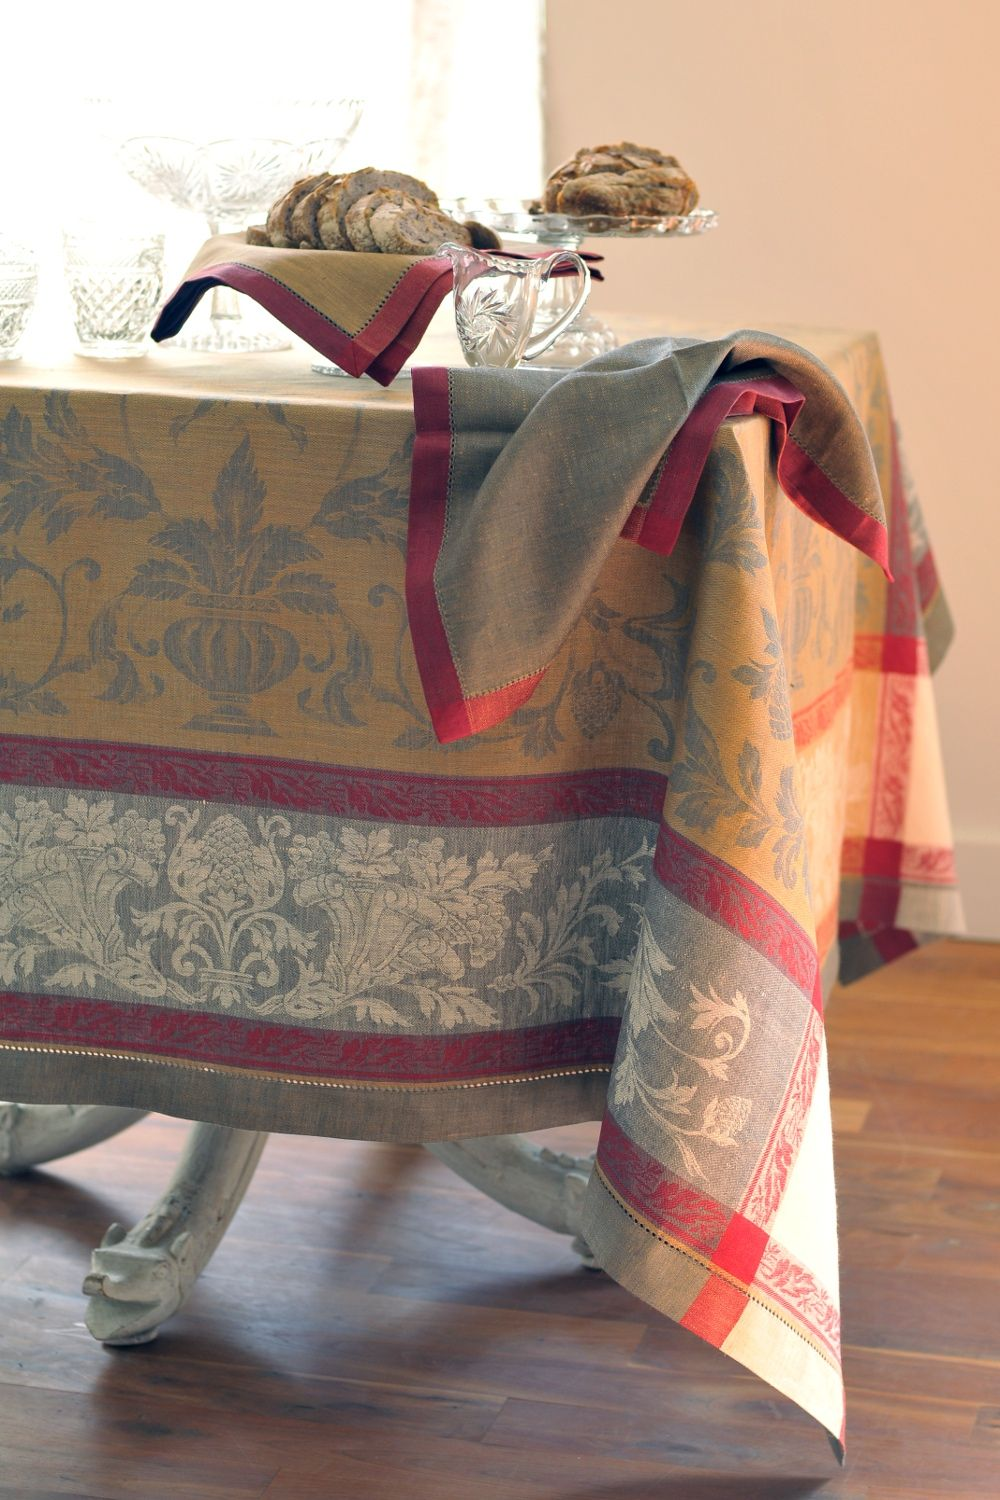 Provence Soleil French Tablecloths French Provence Dishtowels Provence Fabrics French Fabrics Provence Fabrics Pr French Fabric Table Cloth Table Linens